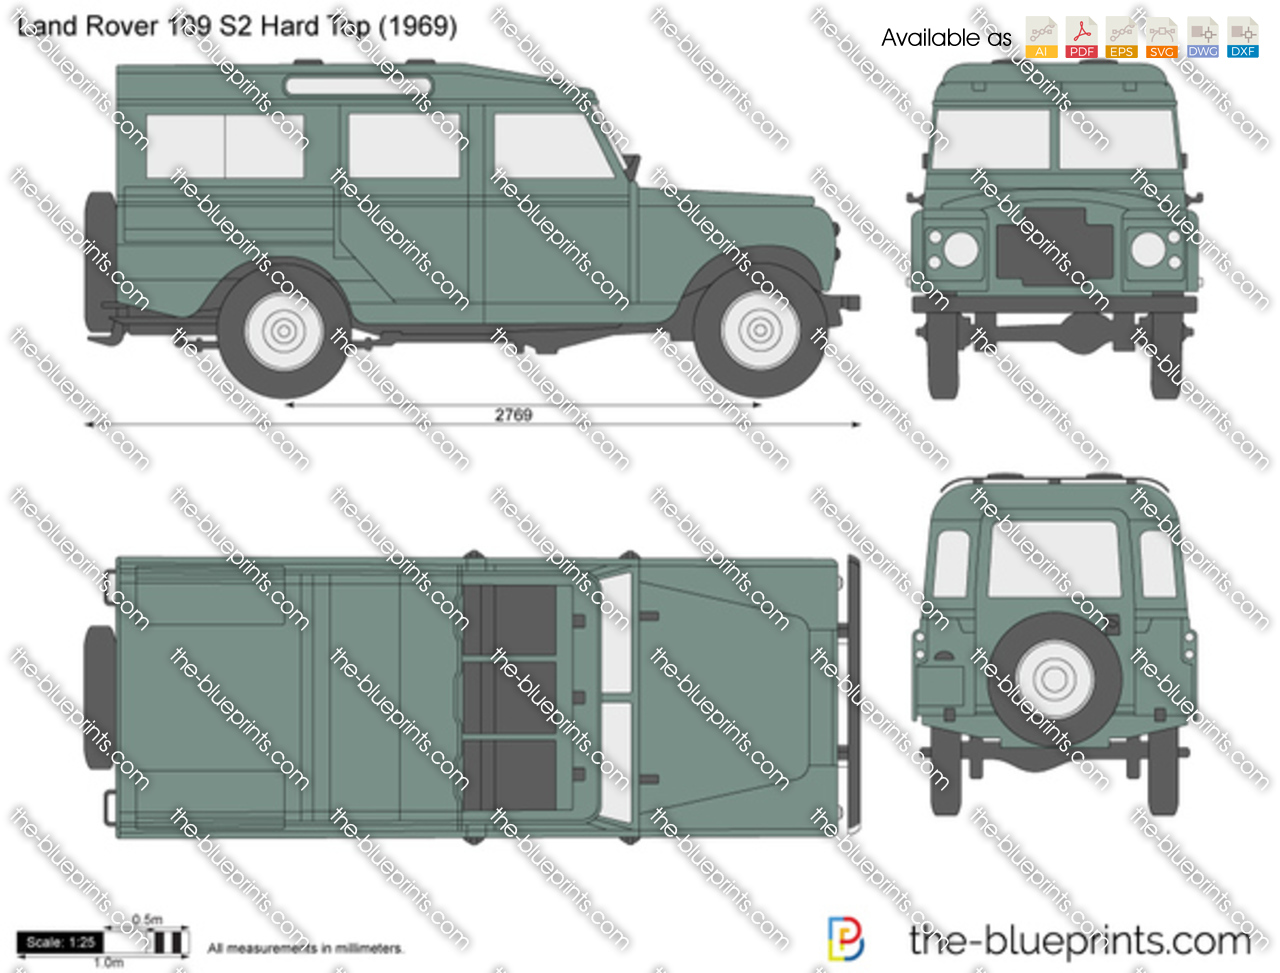 Land Rover 109 S2 Hard Top 1967